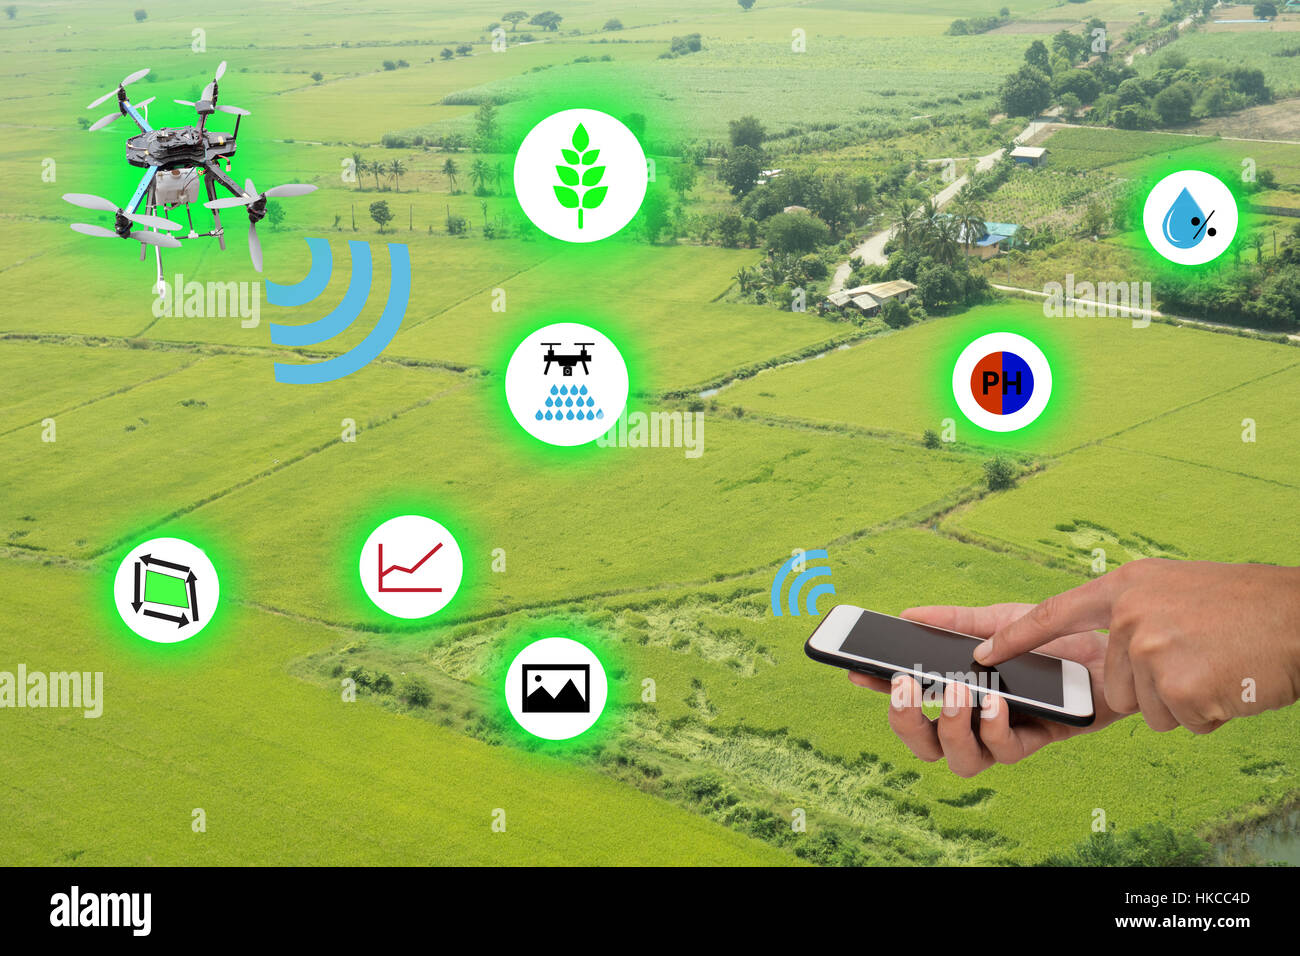 Internet Of Things Industrial Agriculture And Smart